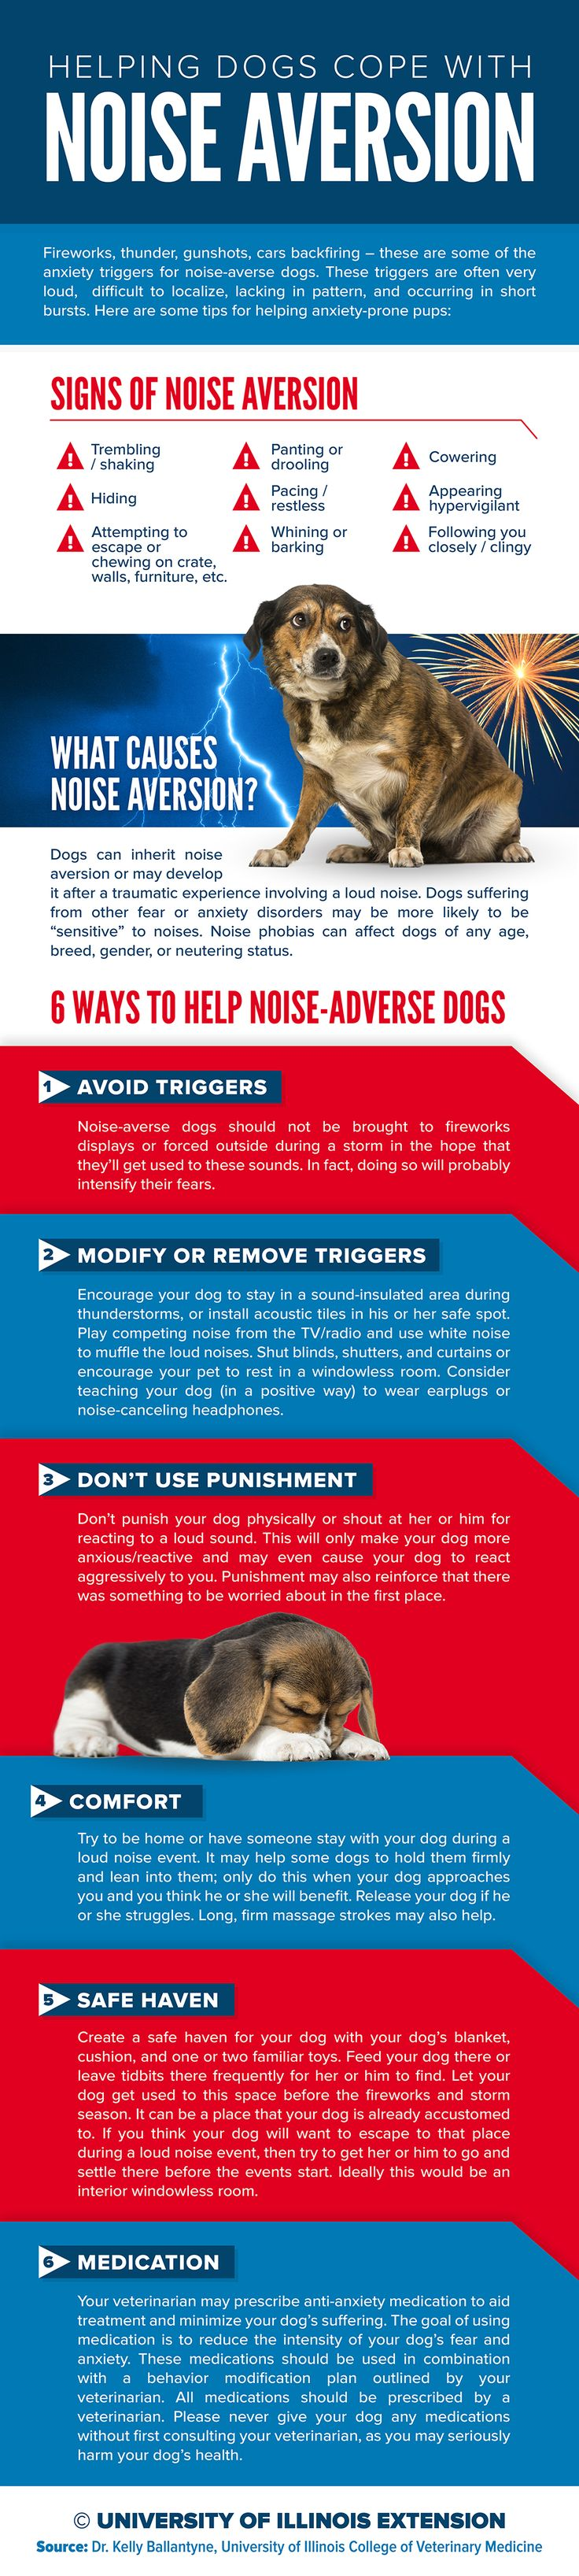 """If your dog suffers and gets anxious around loud noise like fireworks and thunderstorms, this infographic can offer some helpful tips! """"Helping Dogs with Noise Aversion"""""""